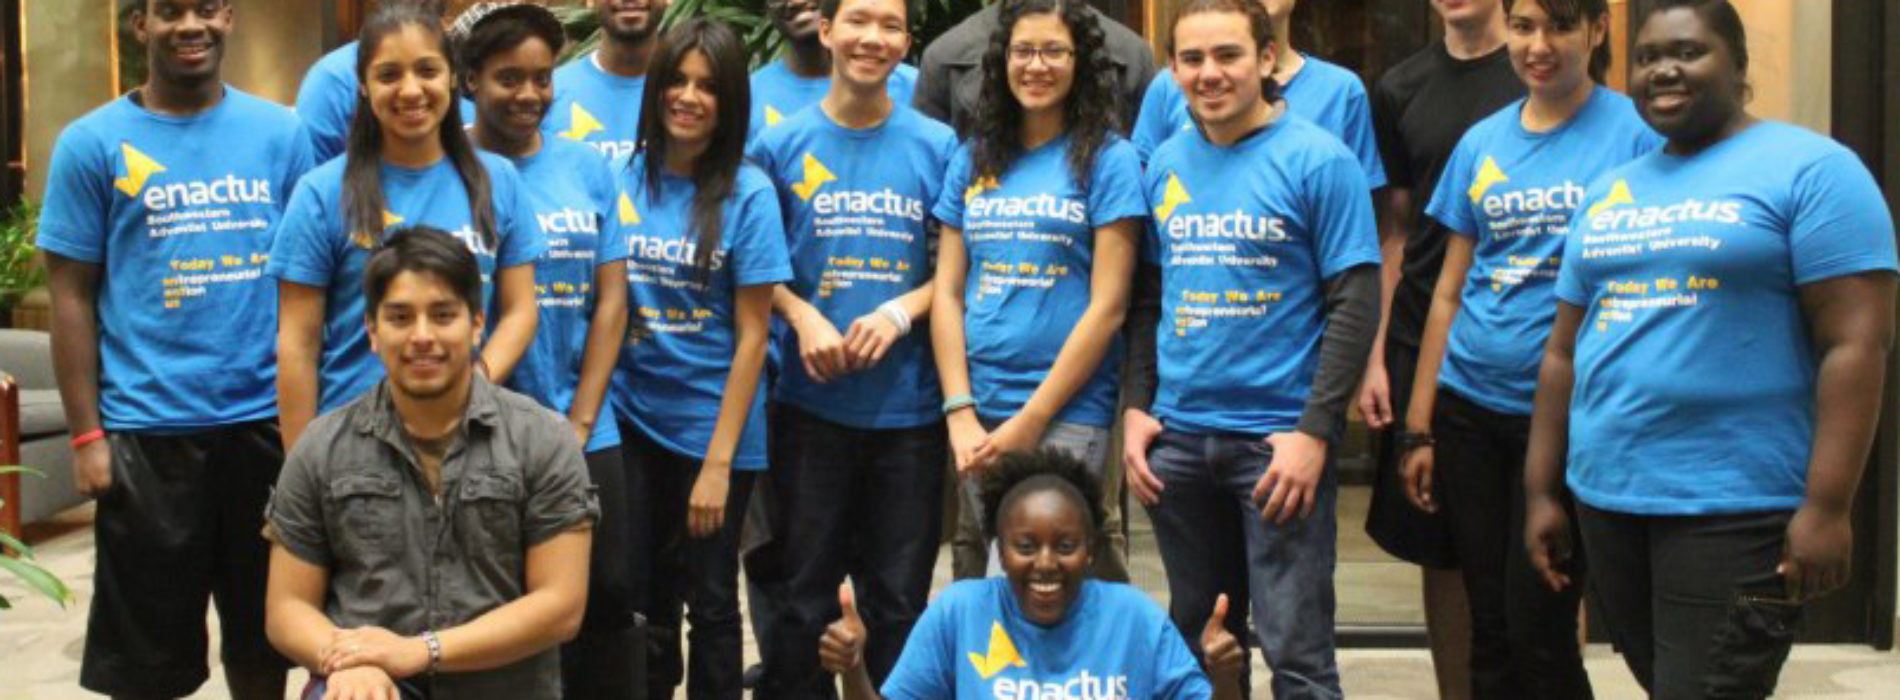 Southwestern ENACTUS Wins Runner-Up in Regional Competition